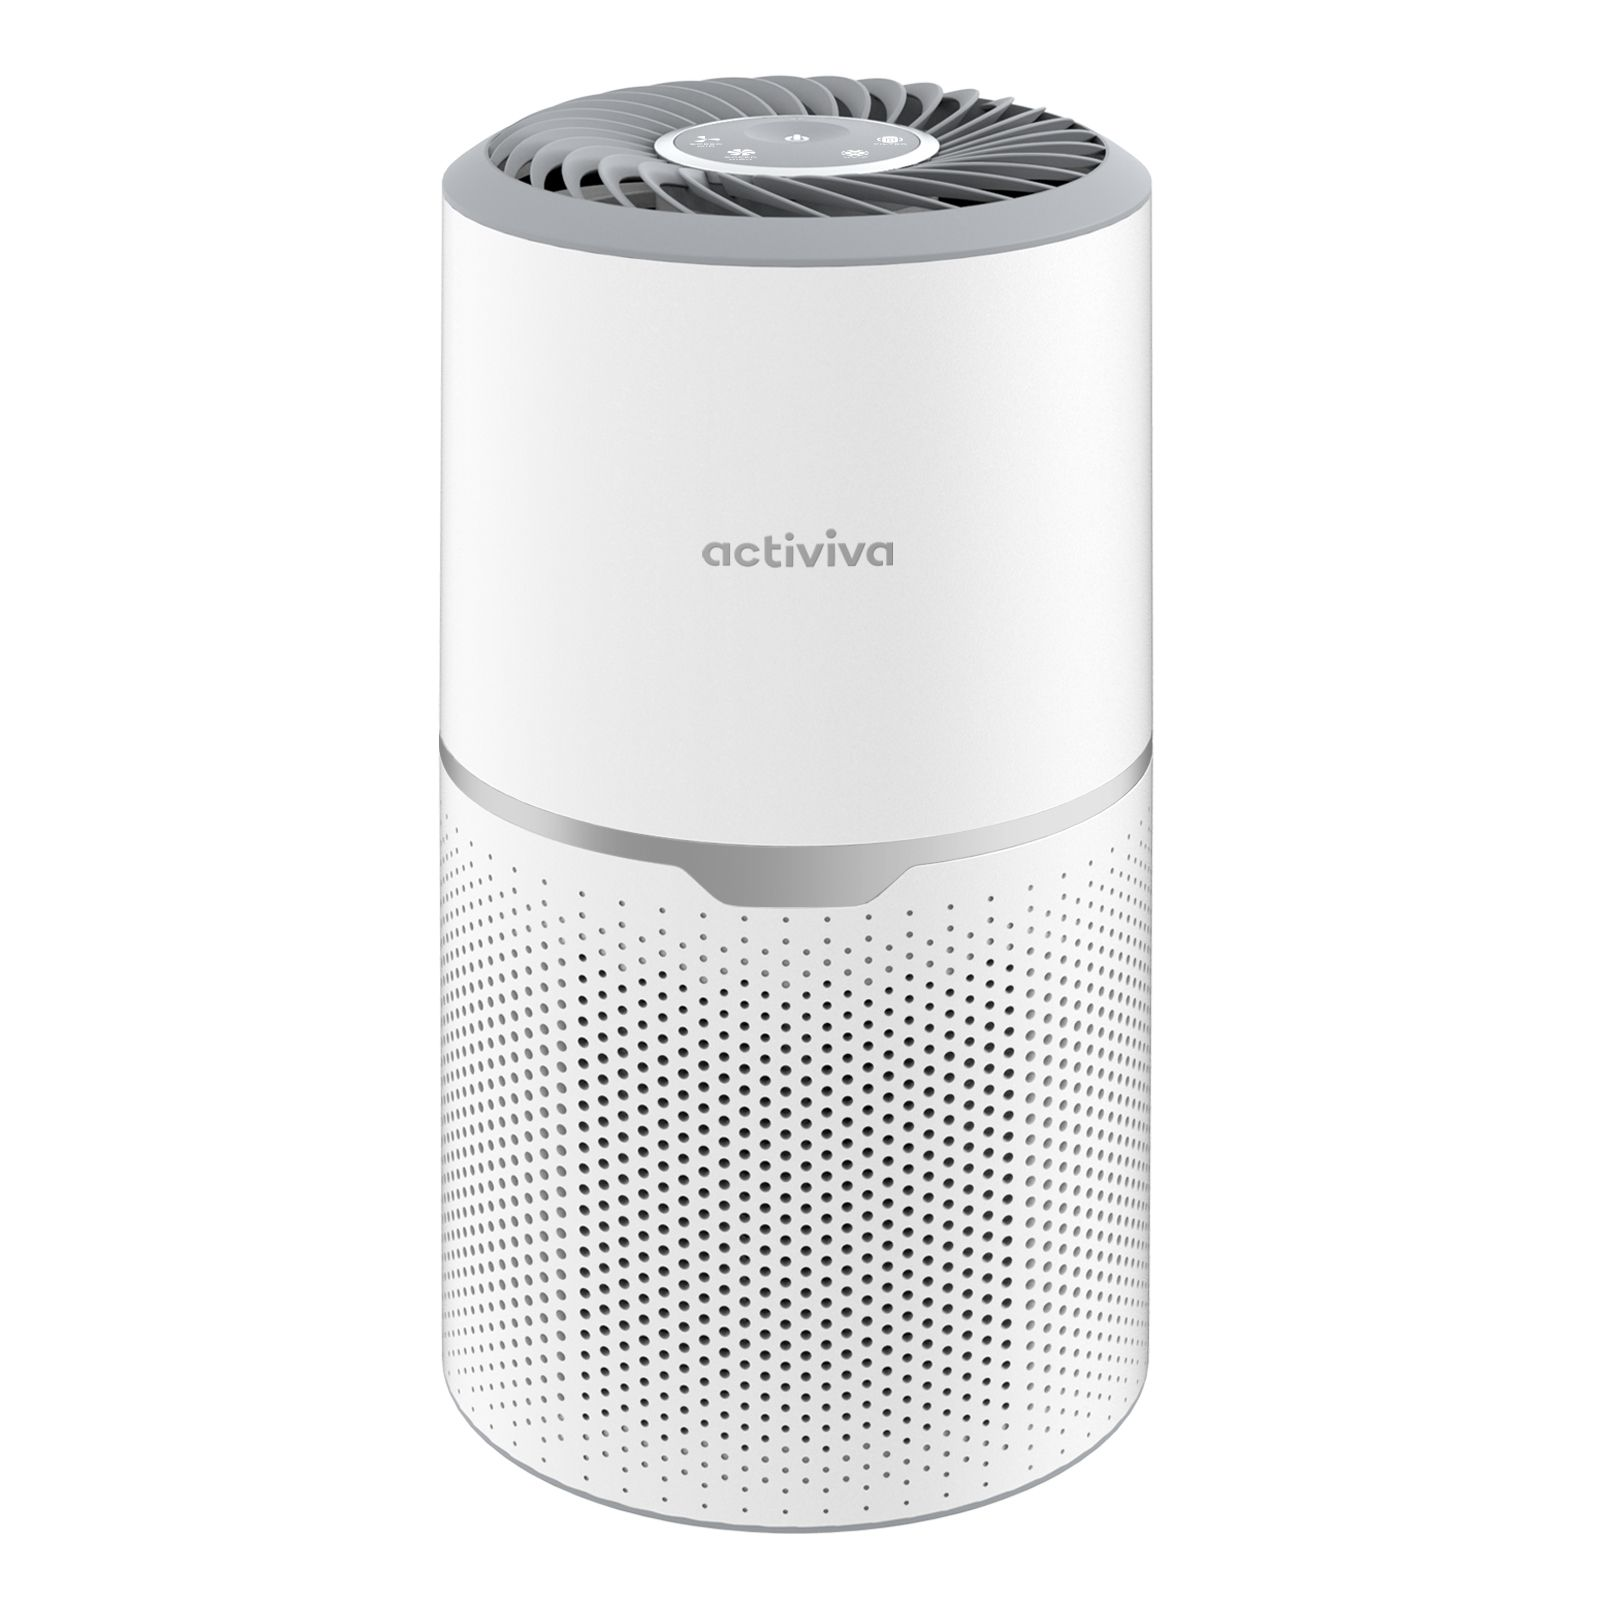 mbeat®, activiva, True, HEPA, Air, Purifier, Removes, up, to, 99.95%, Air, Dust, Dust, Mite, Bacteria, Mold, Pollen, Cooking, Odor,